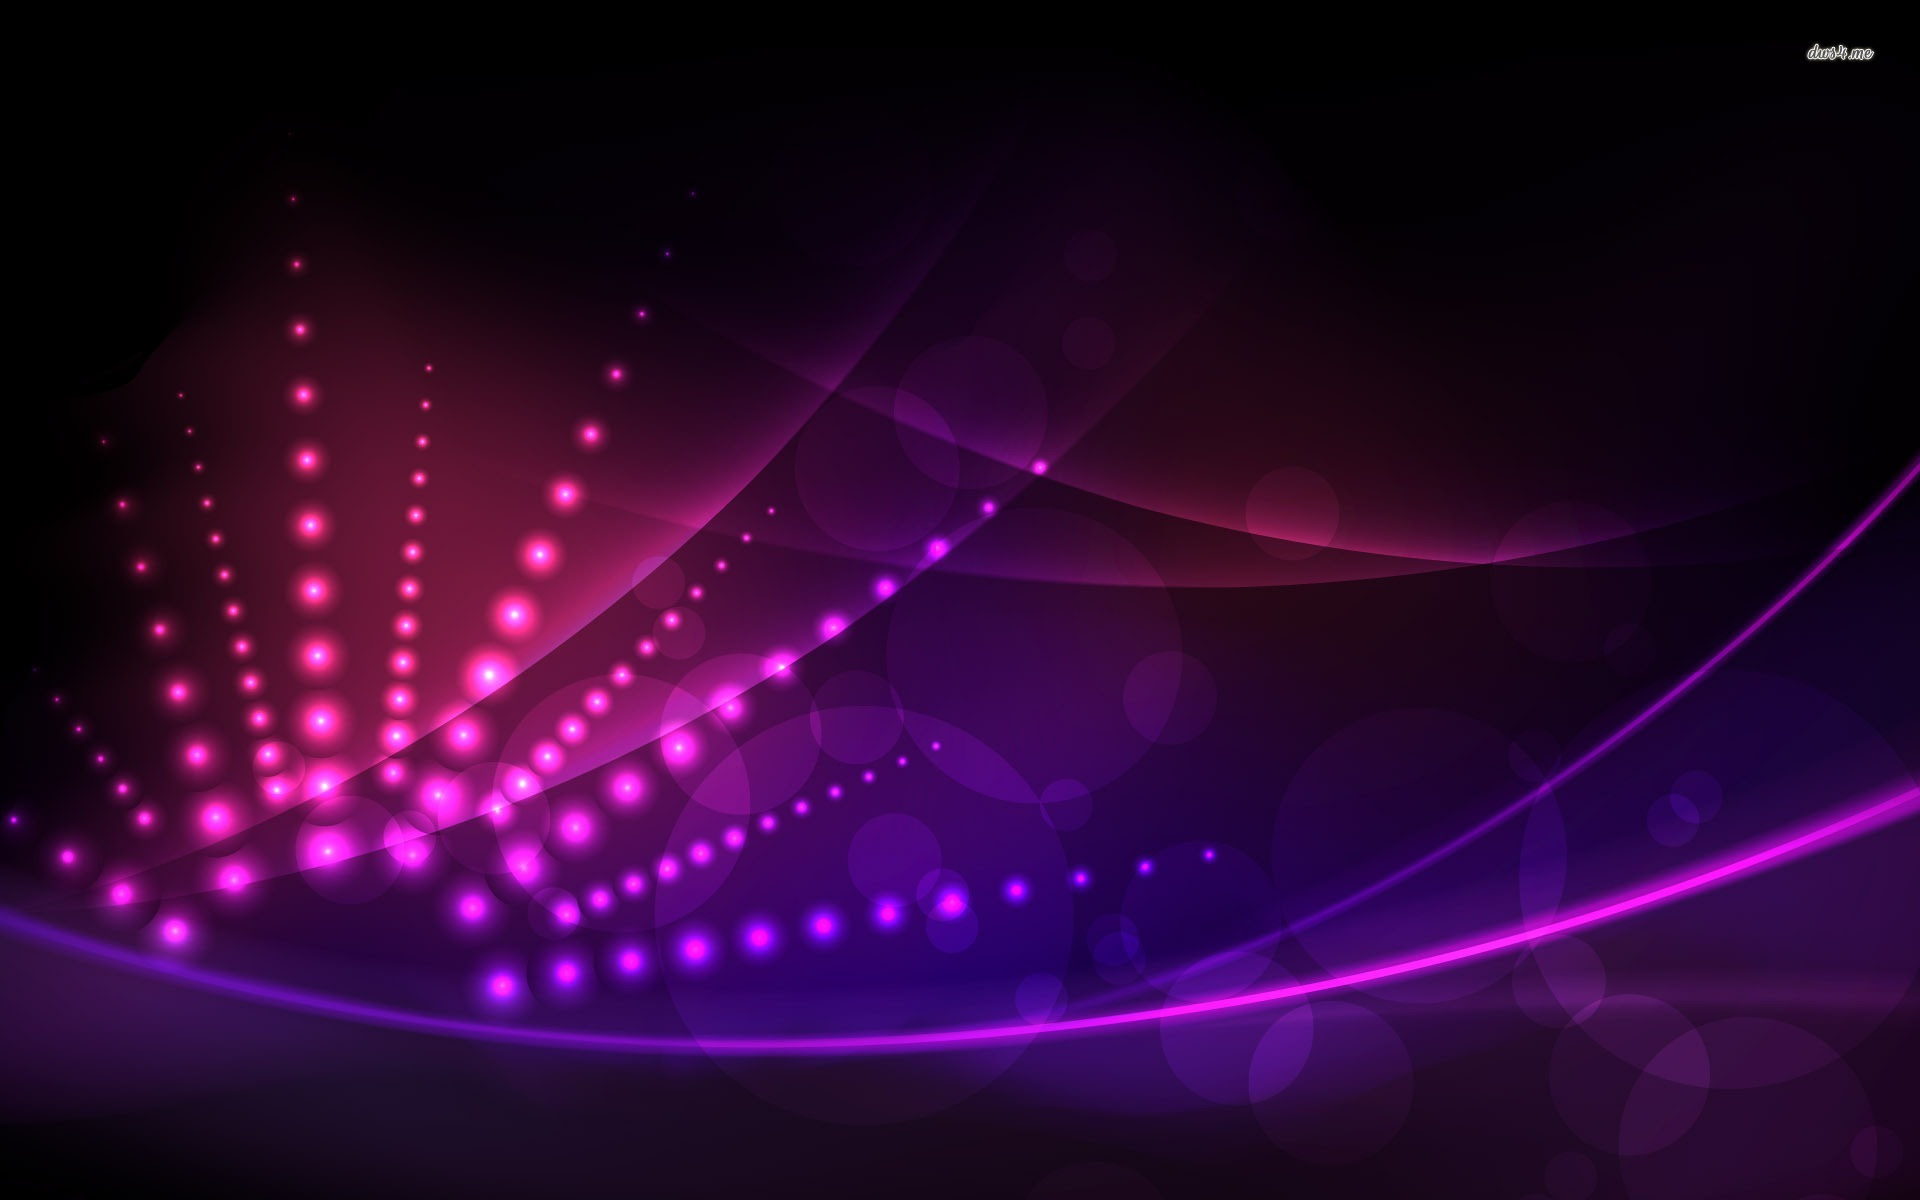 Purple Abstract Wallpaper 1920x1200 74241